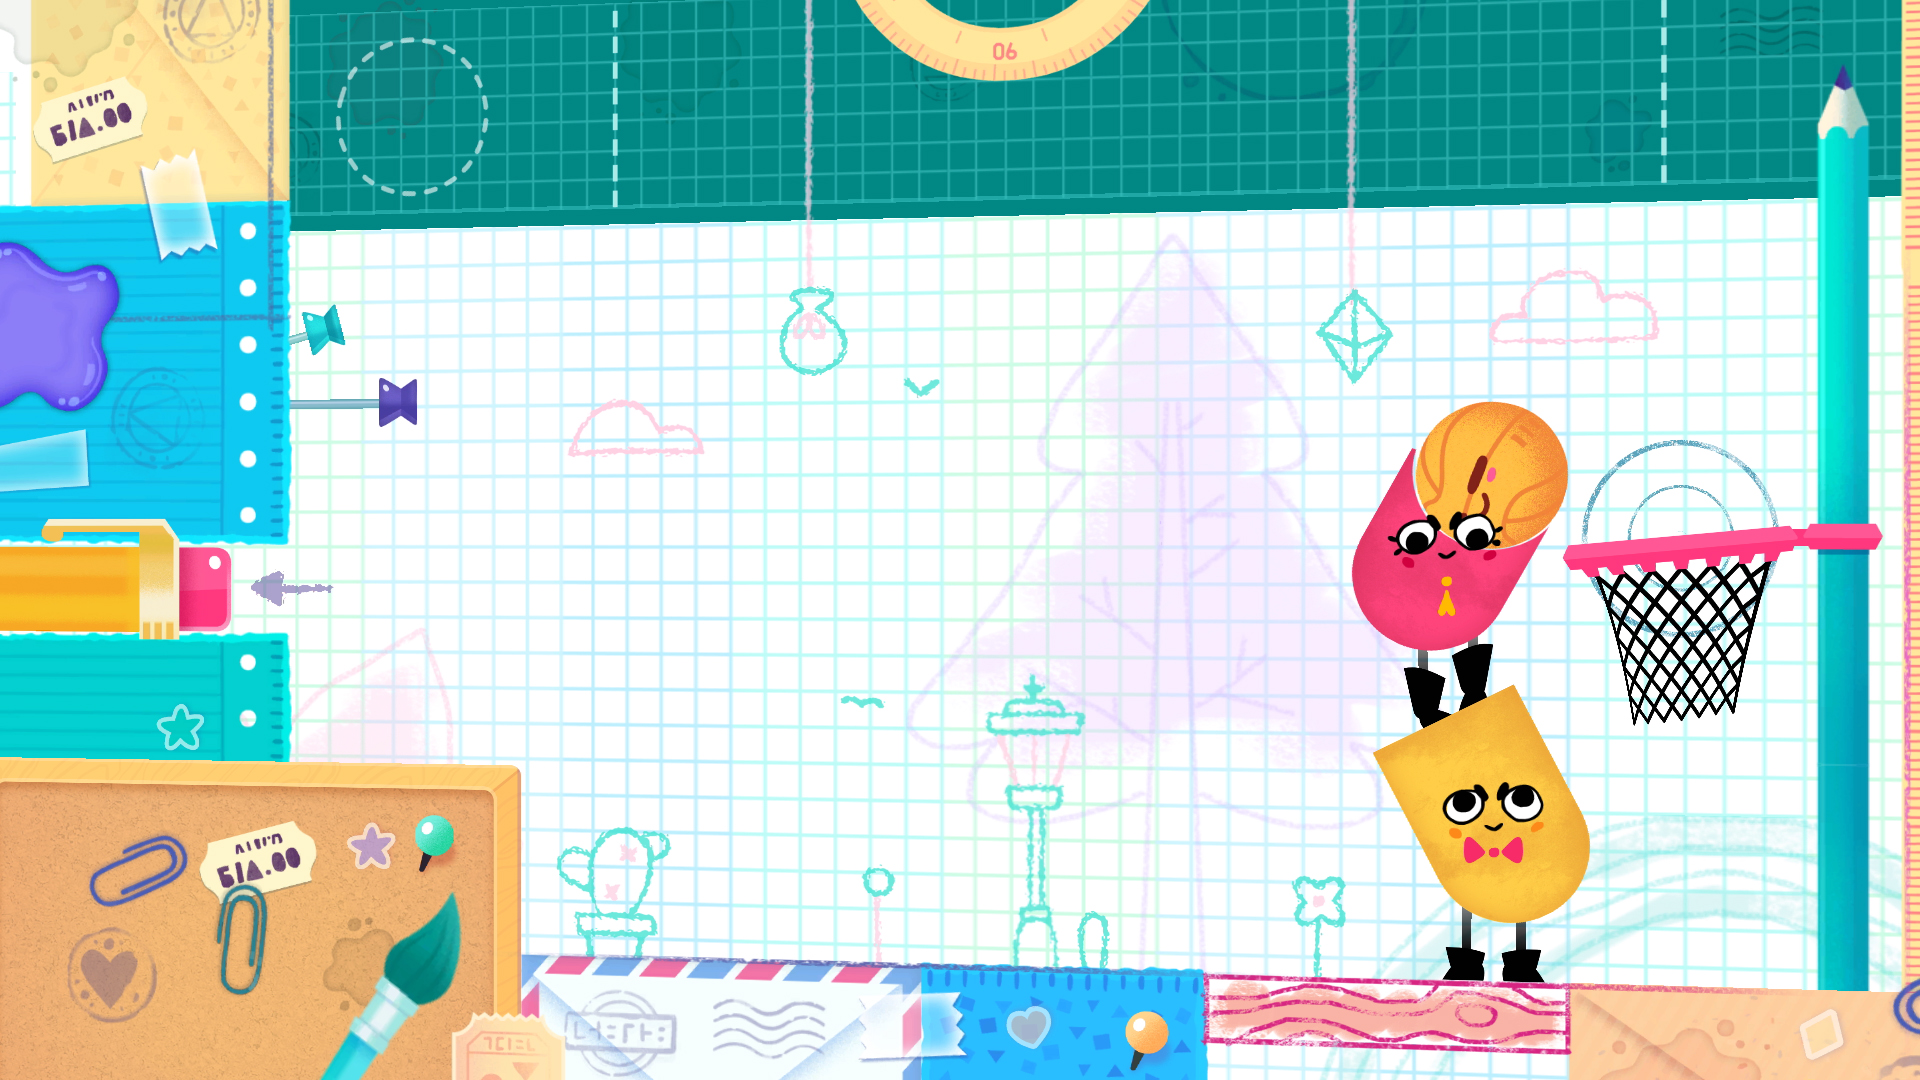 Snipperclips-Cut-It-Out-Together_2017_01-13-17_002